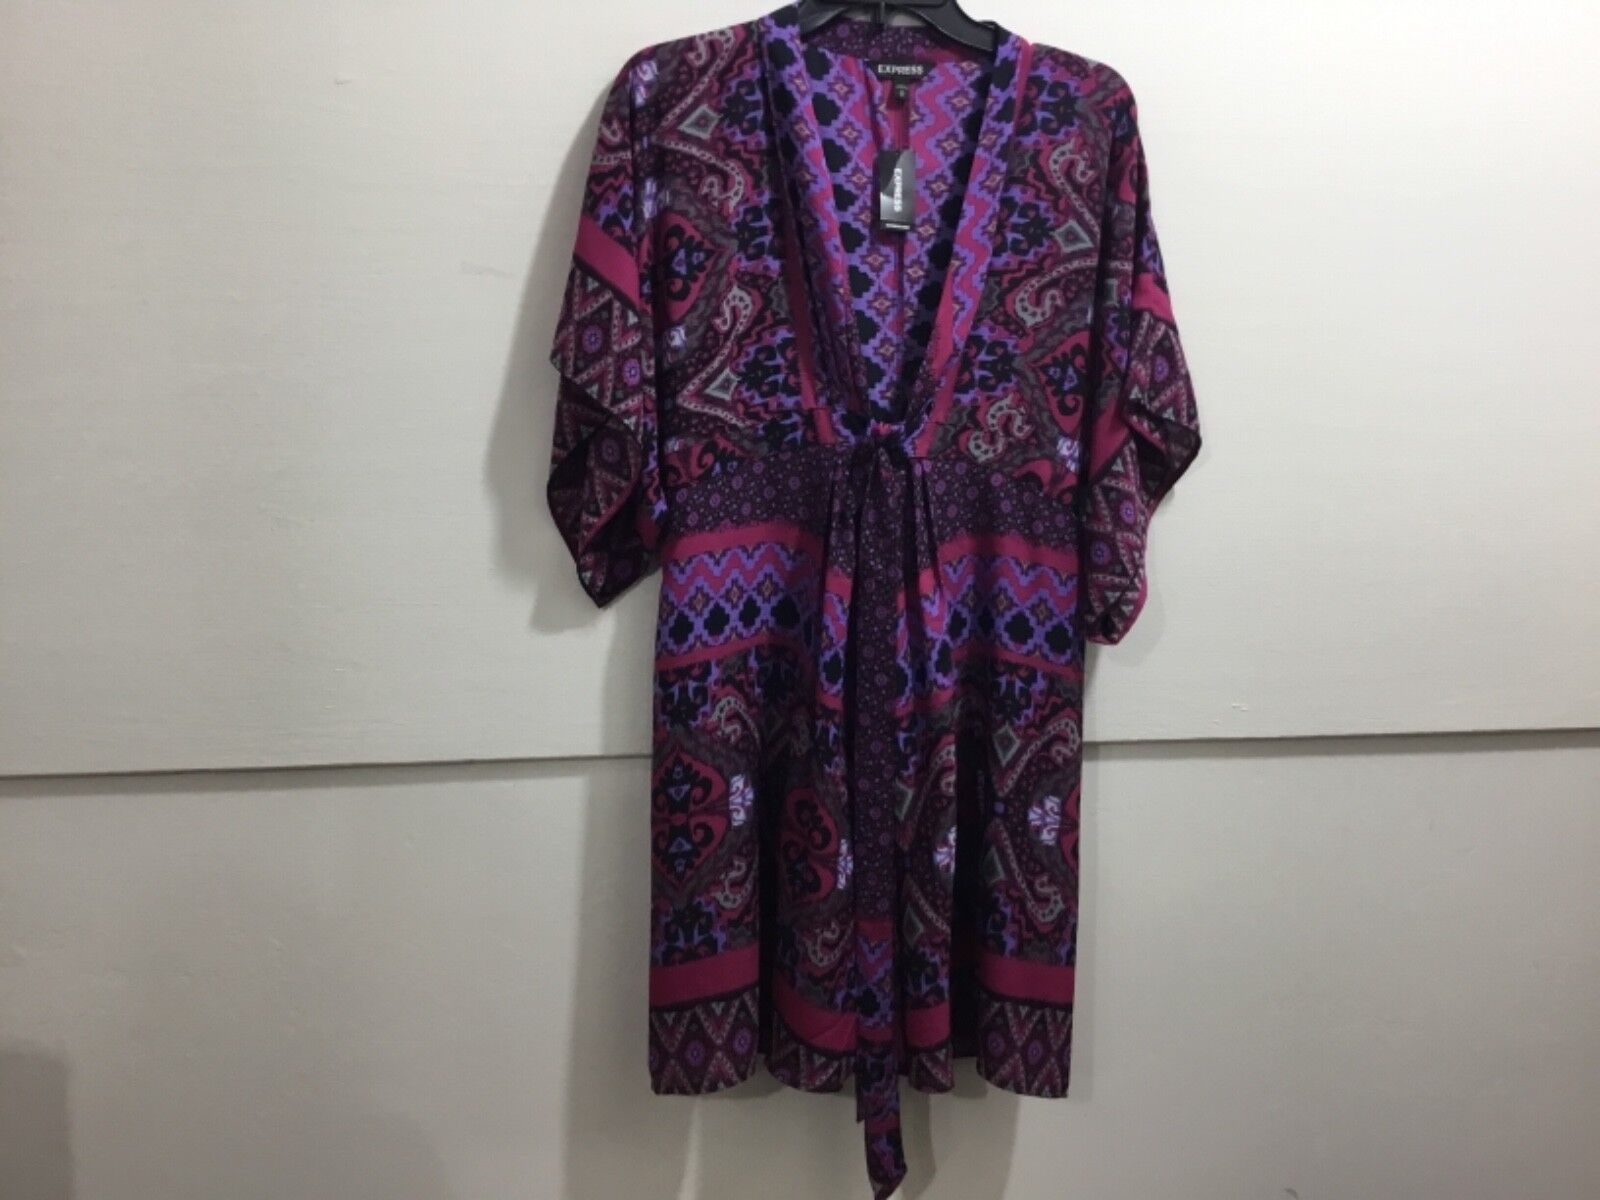 Express ladies NWT adorable tie front patterned adorable dress